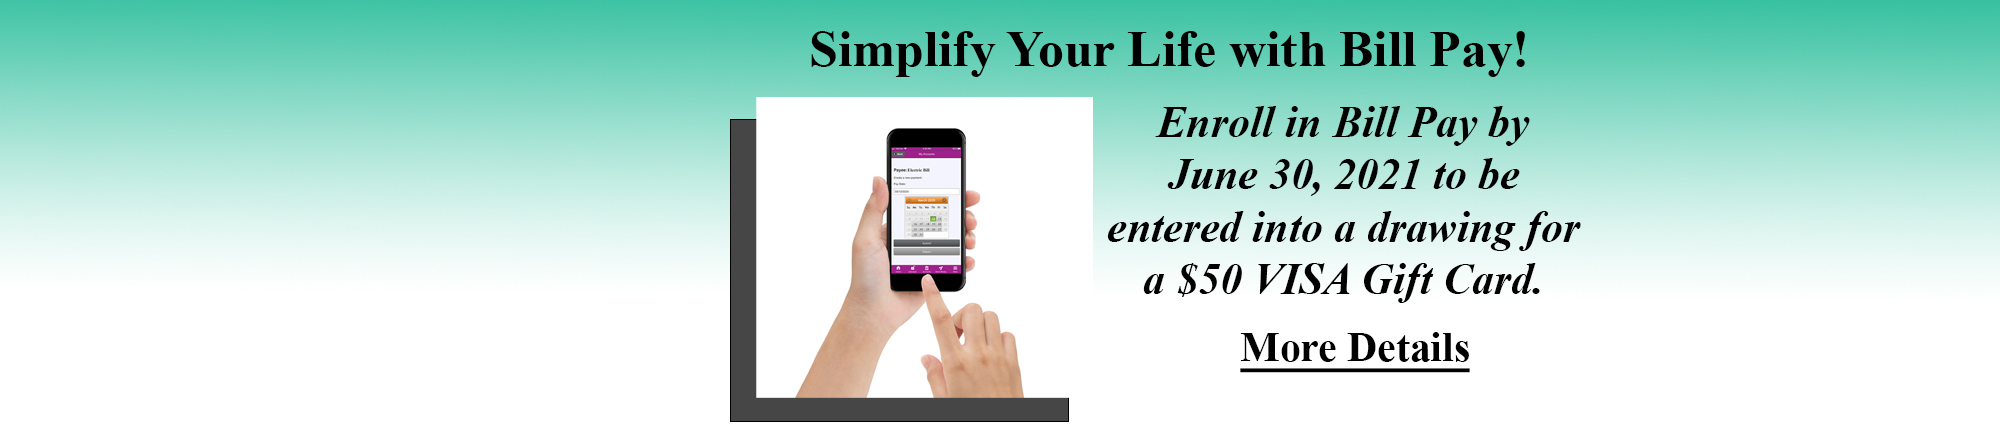 Simplify Your Life with Bill Pay! Enroll in Bill Pay by June Thirtieth twenty twenty one to be entered into a drawing for a fifty dollar visa gift card. click for more details.